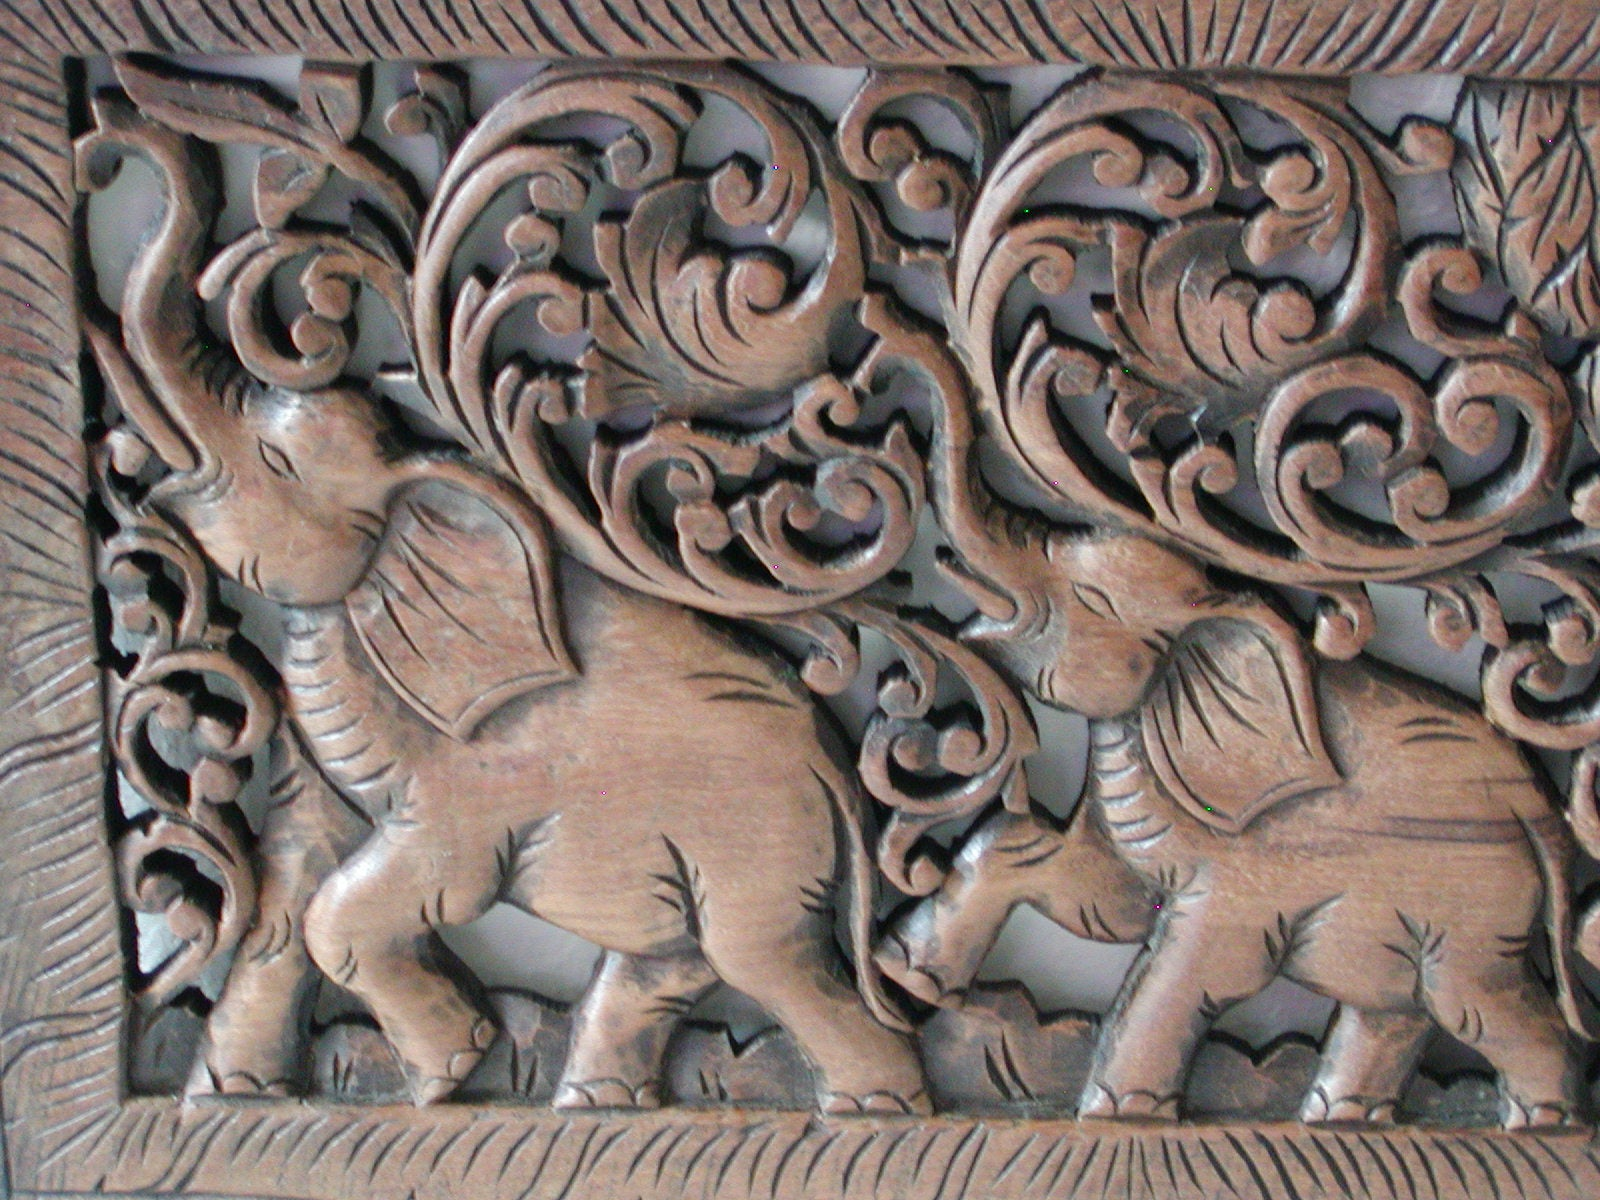 Teak wood elephant carving handmade in